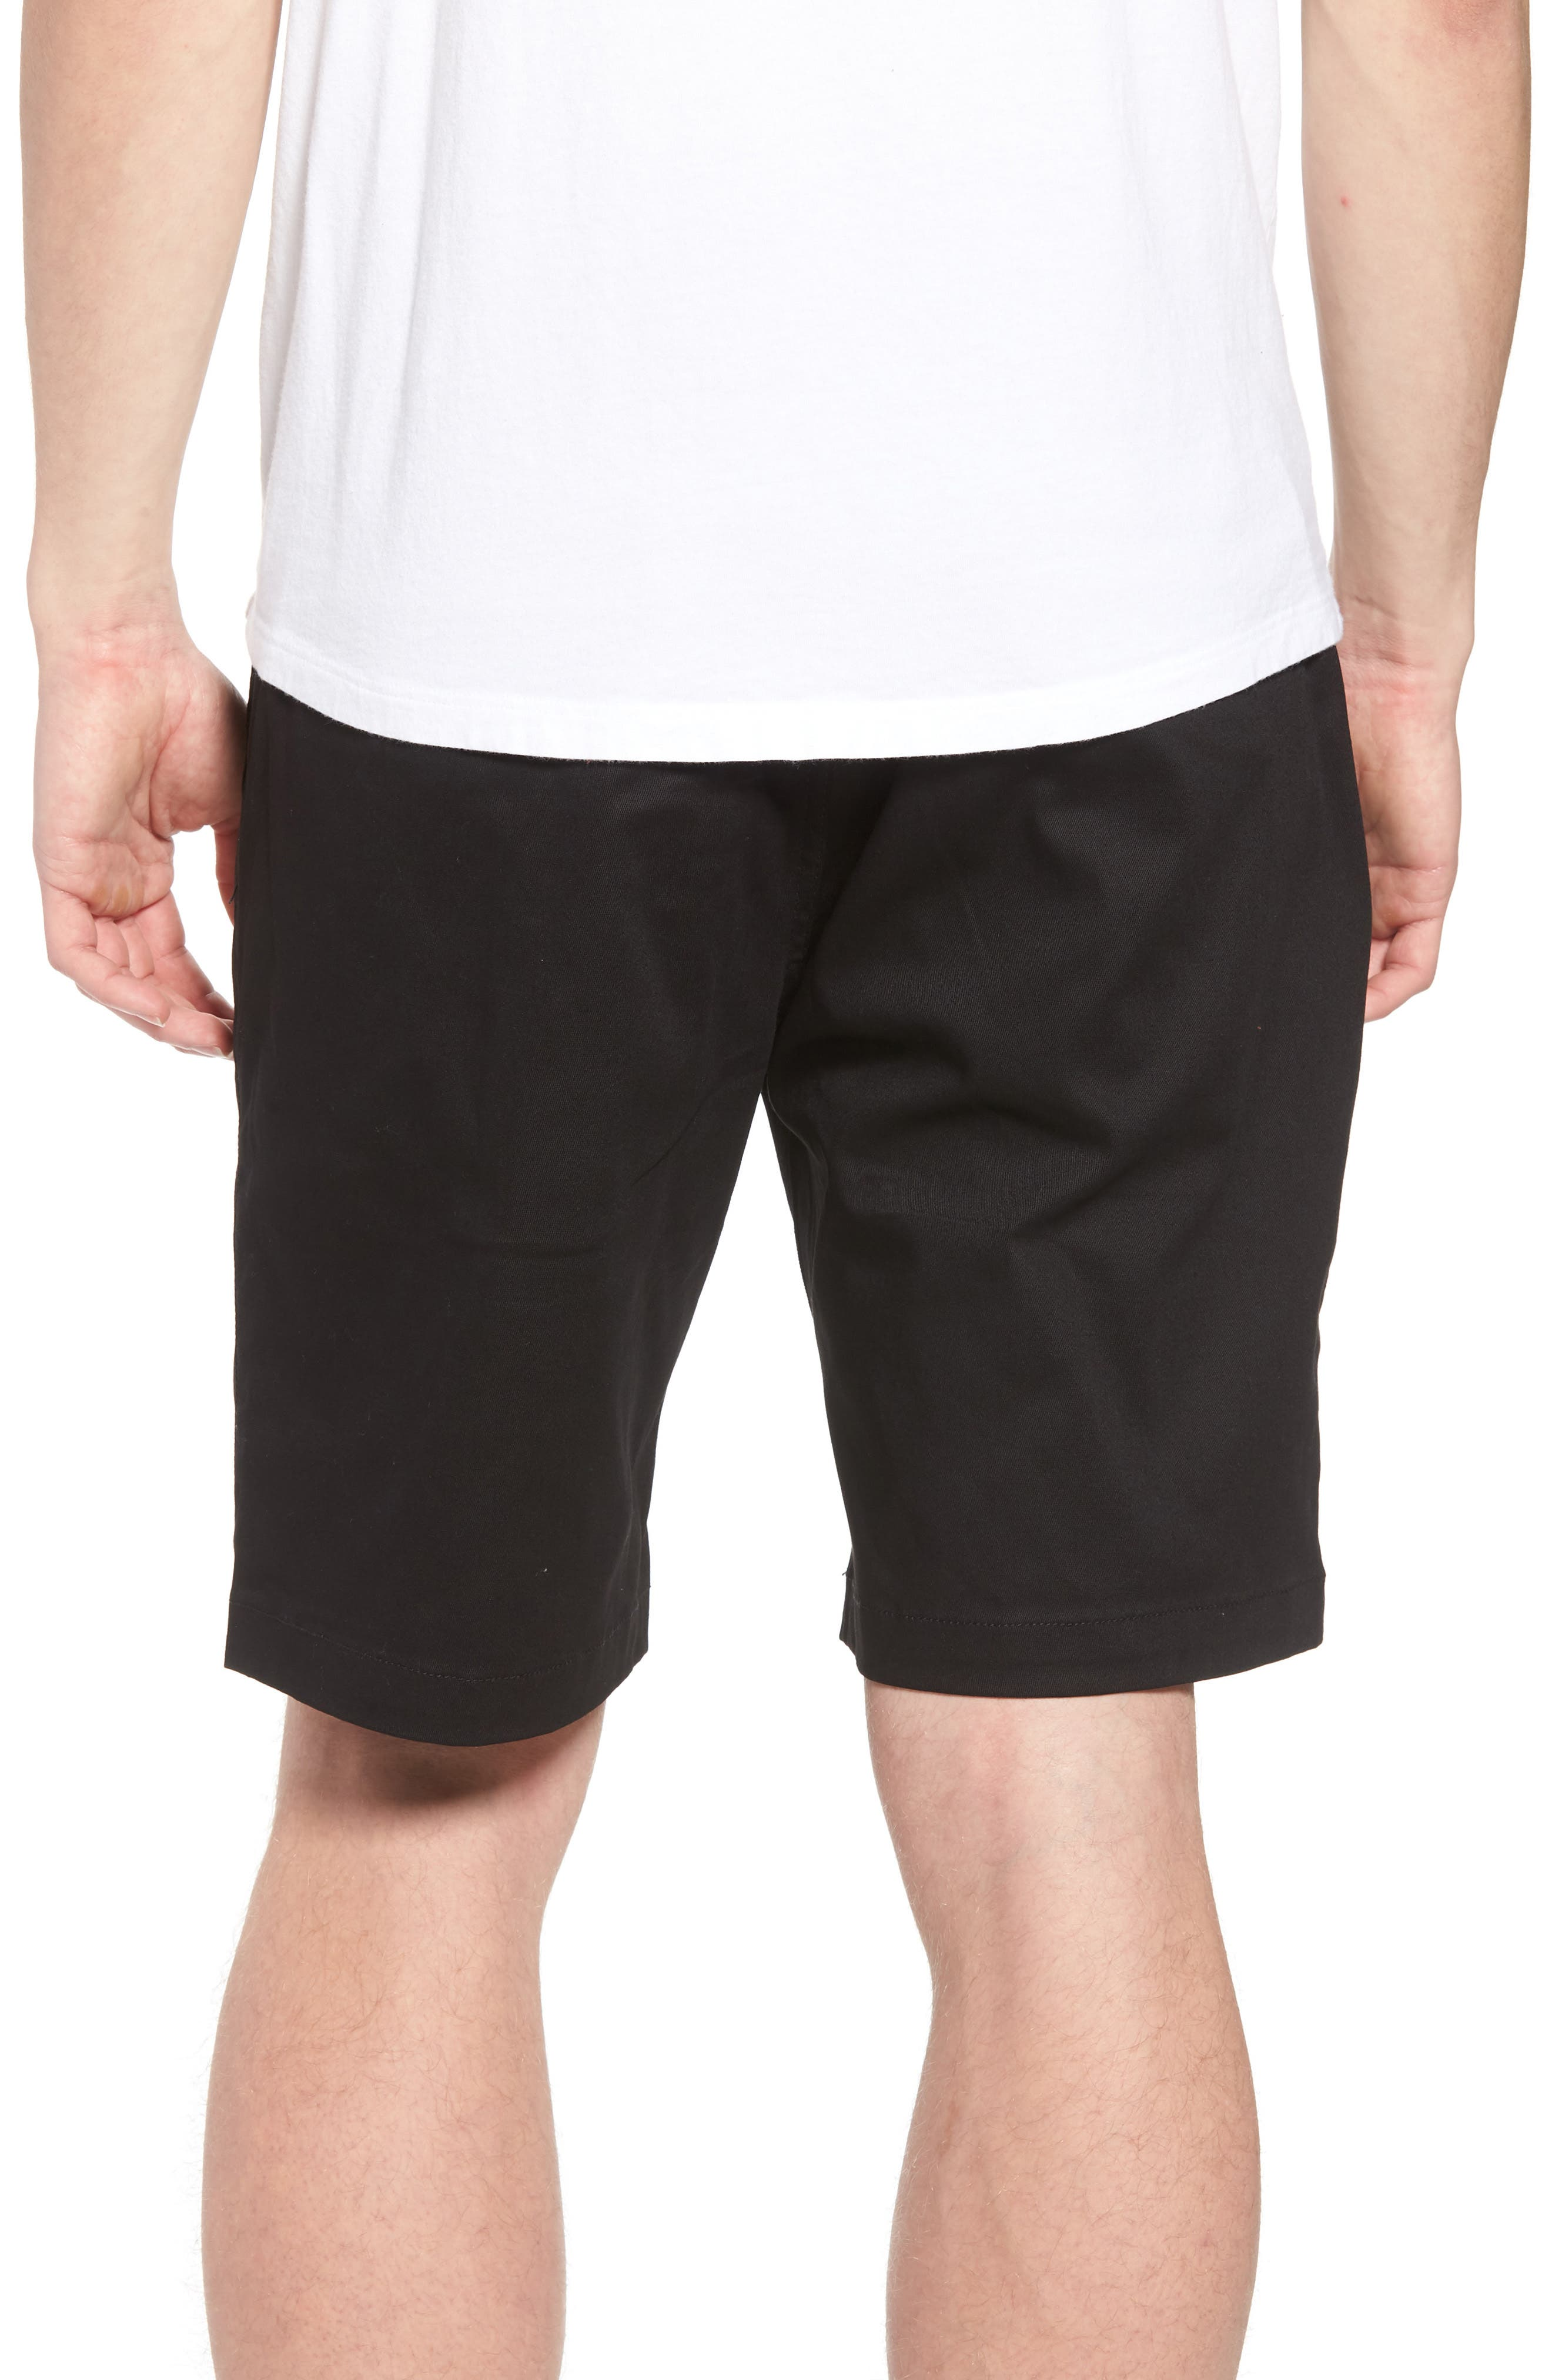 Runner Shorts,                             Alternate thumbnail 2, color,                             Black